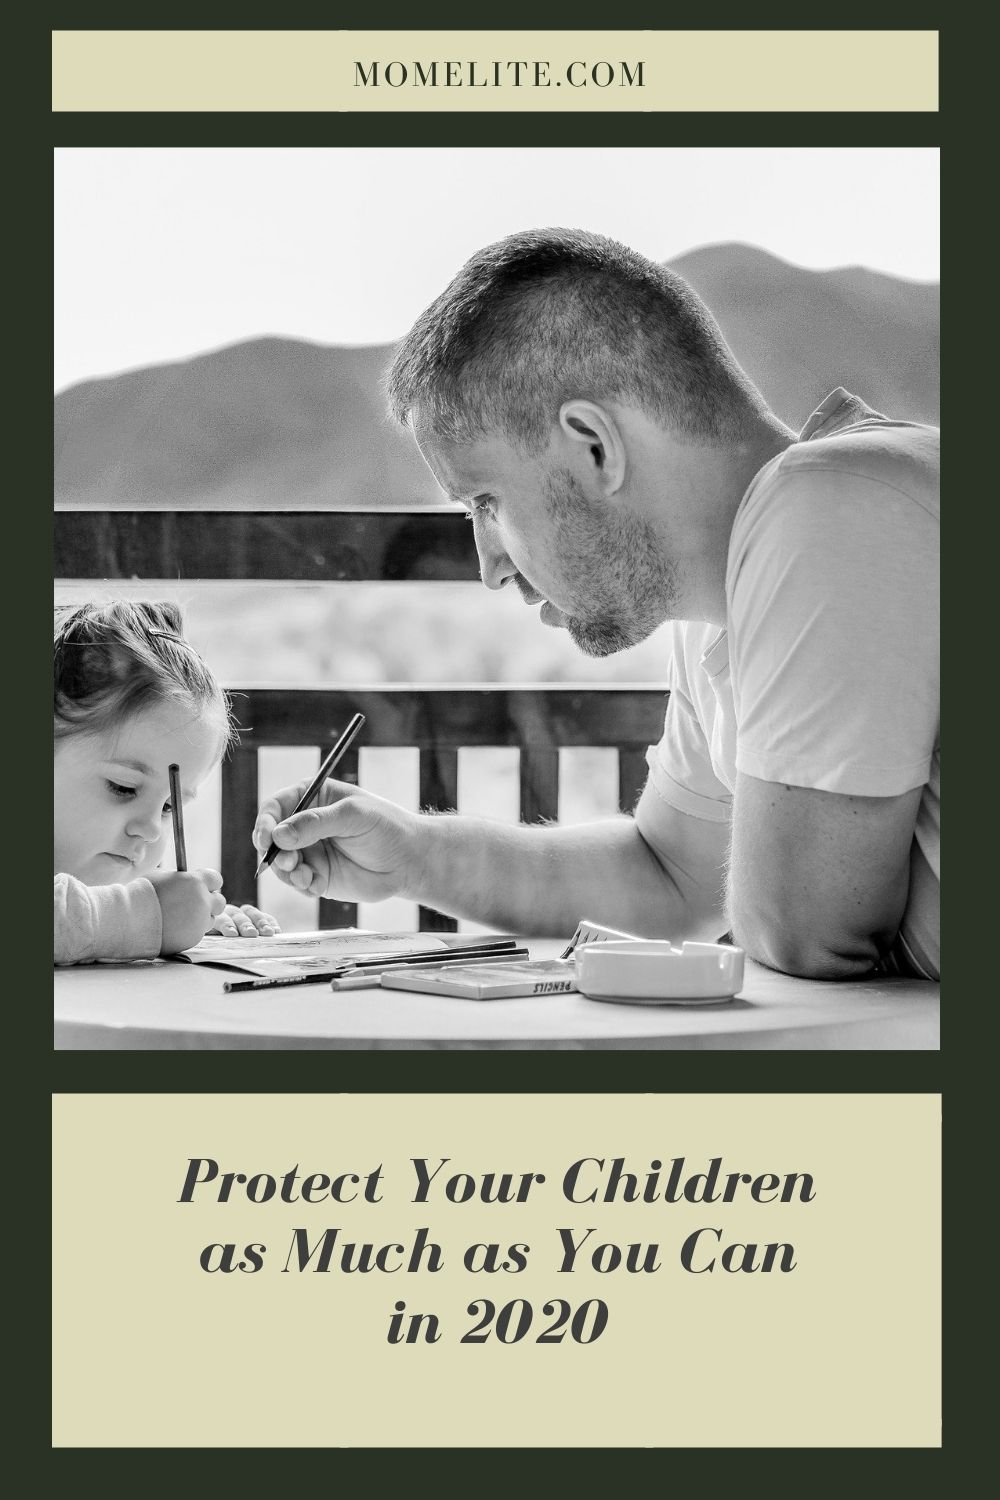 Protect Your Children as Much as You Can in 2020